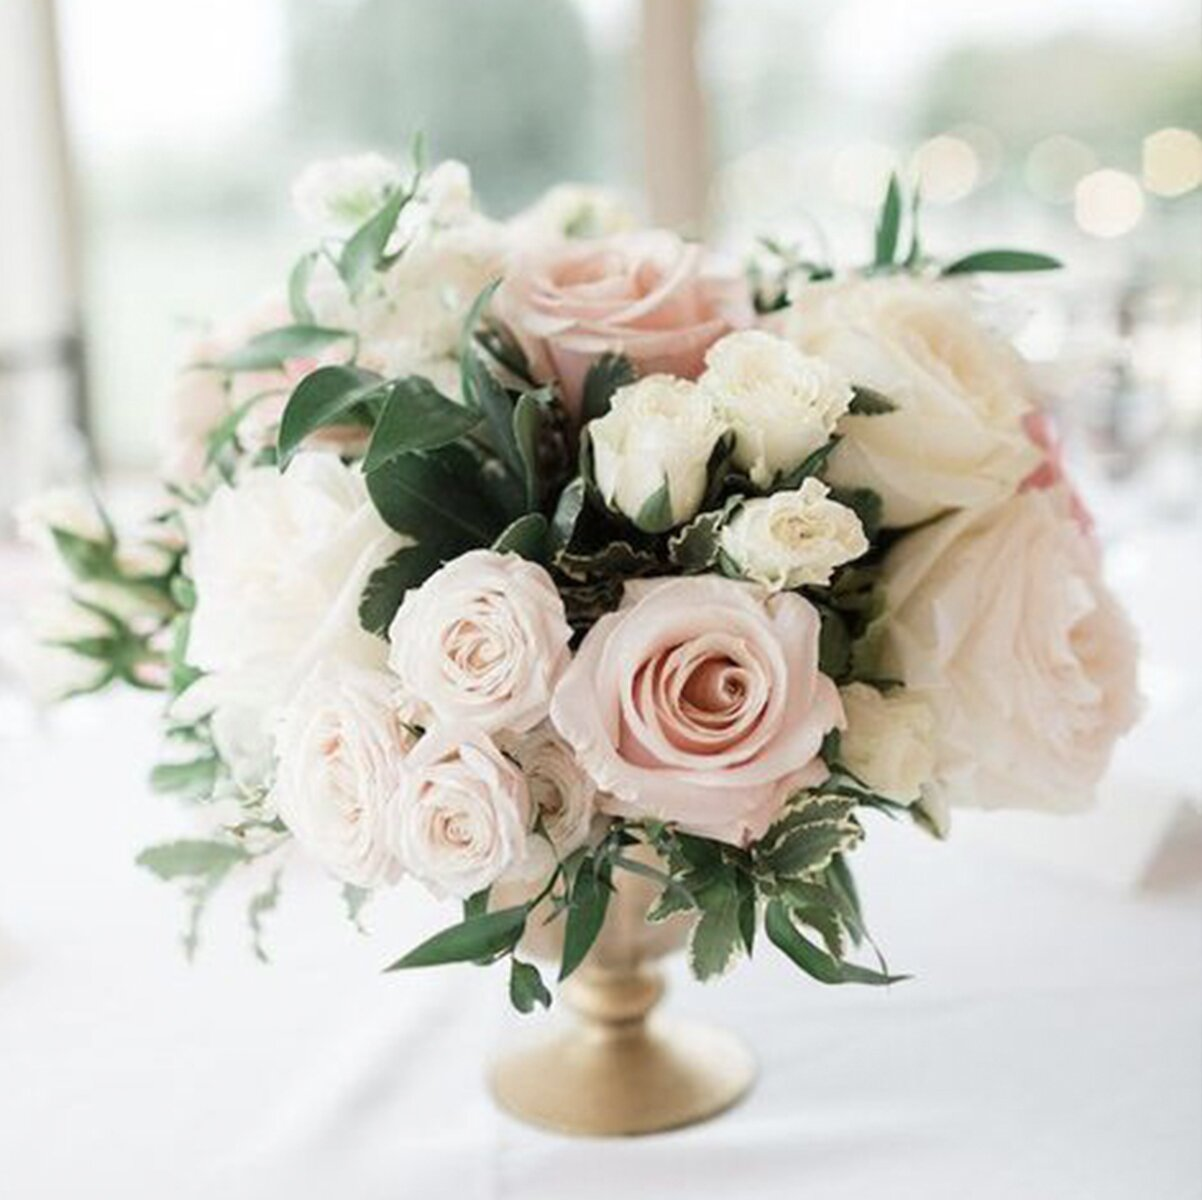 wedding-flowers-florist-sydney-centrepiece-reception-urn-packages-prices-affordable-cheap